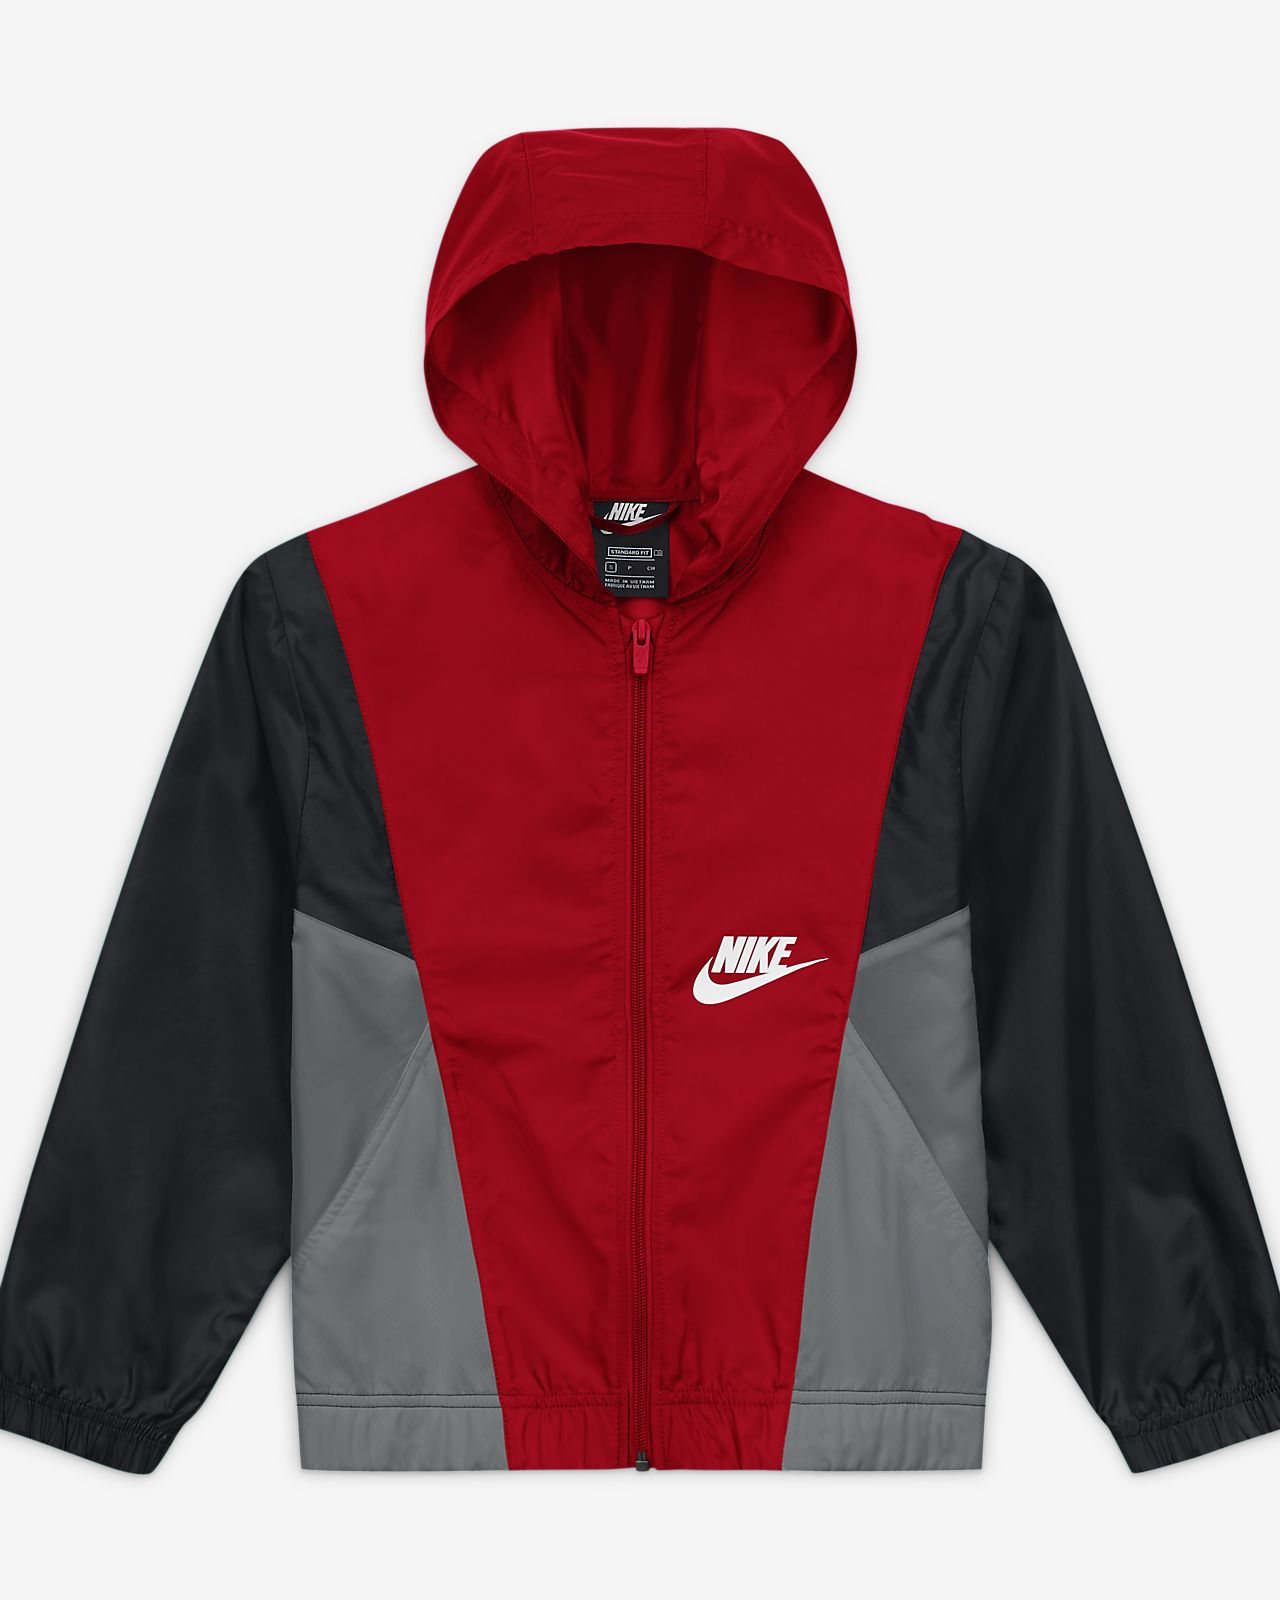 Nike Sportswear Older Kids' (Boys') Woven Jacket